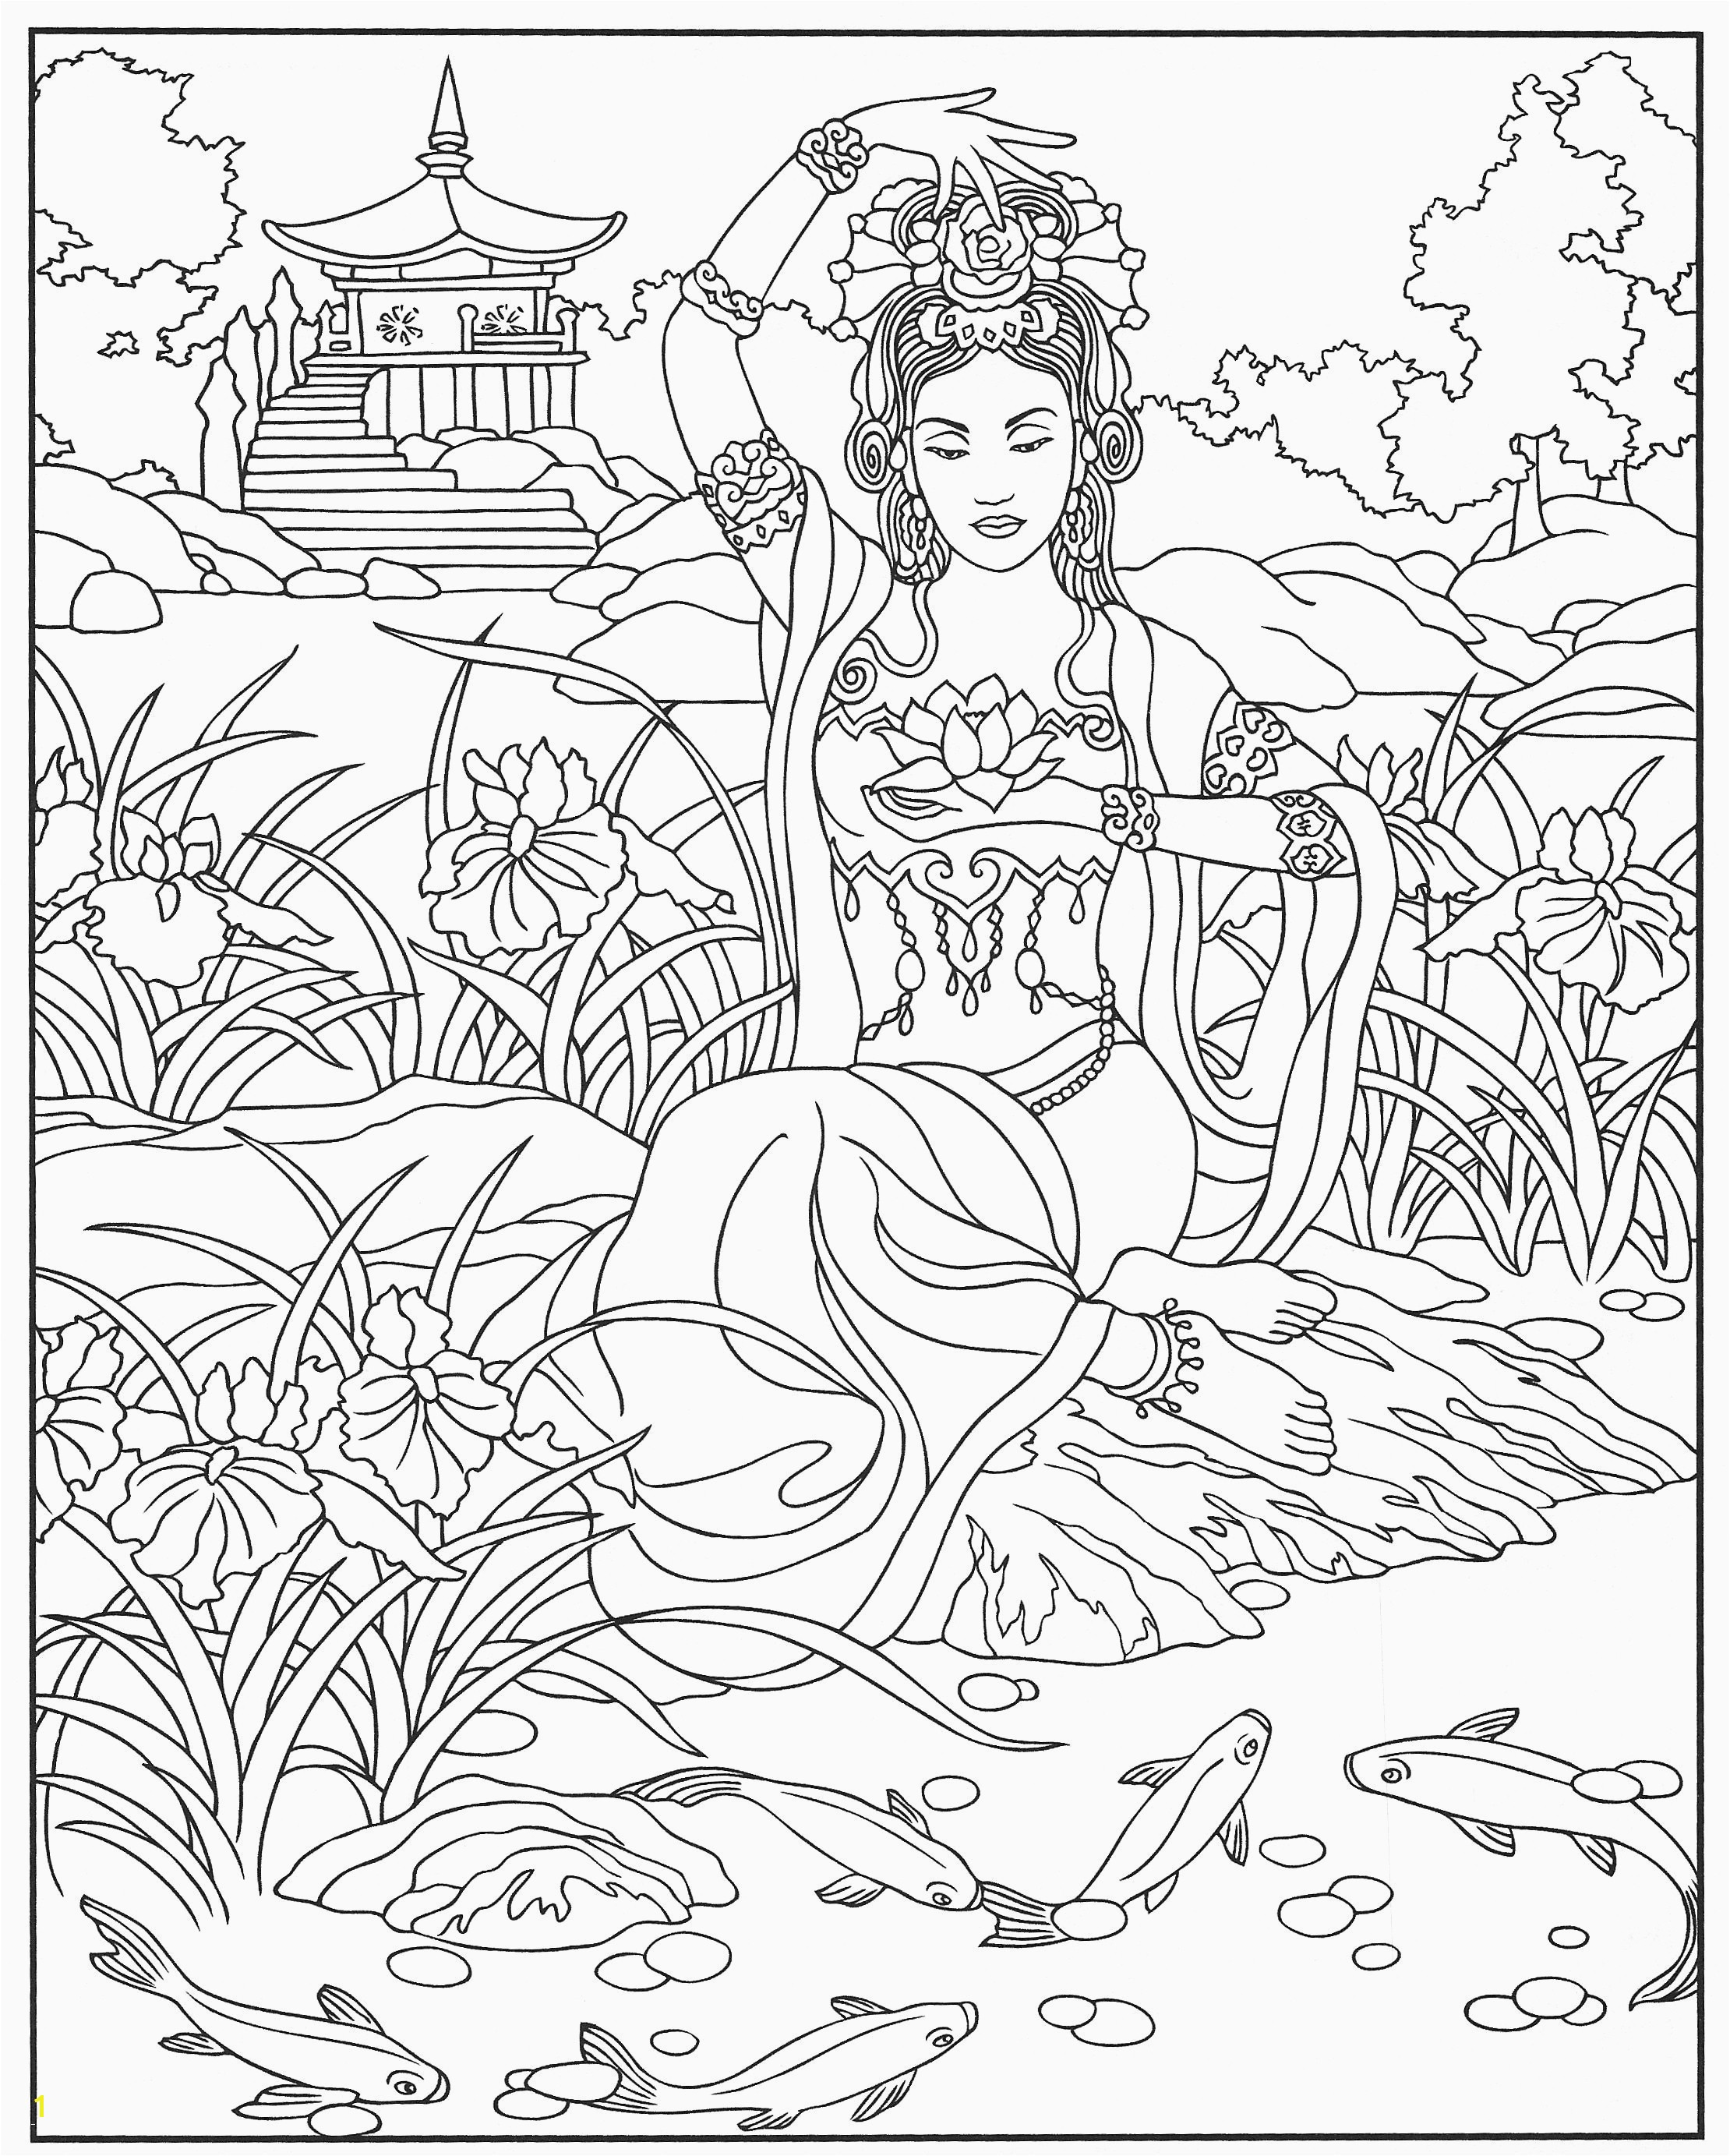 Coloring Games Adults Elegant Cool Coloring Page Unique Witch Coloring Pages New Crayola Pages 0d American Girl